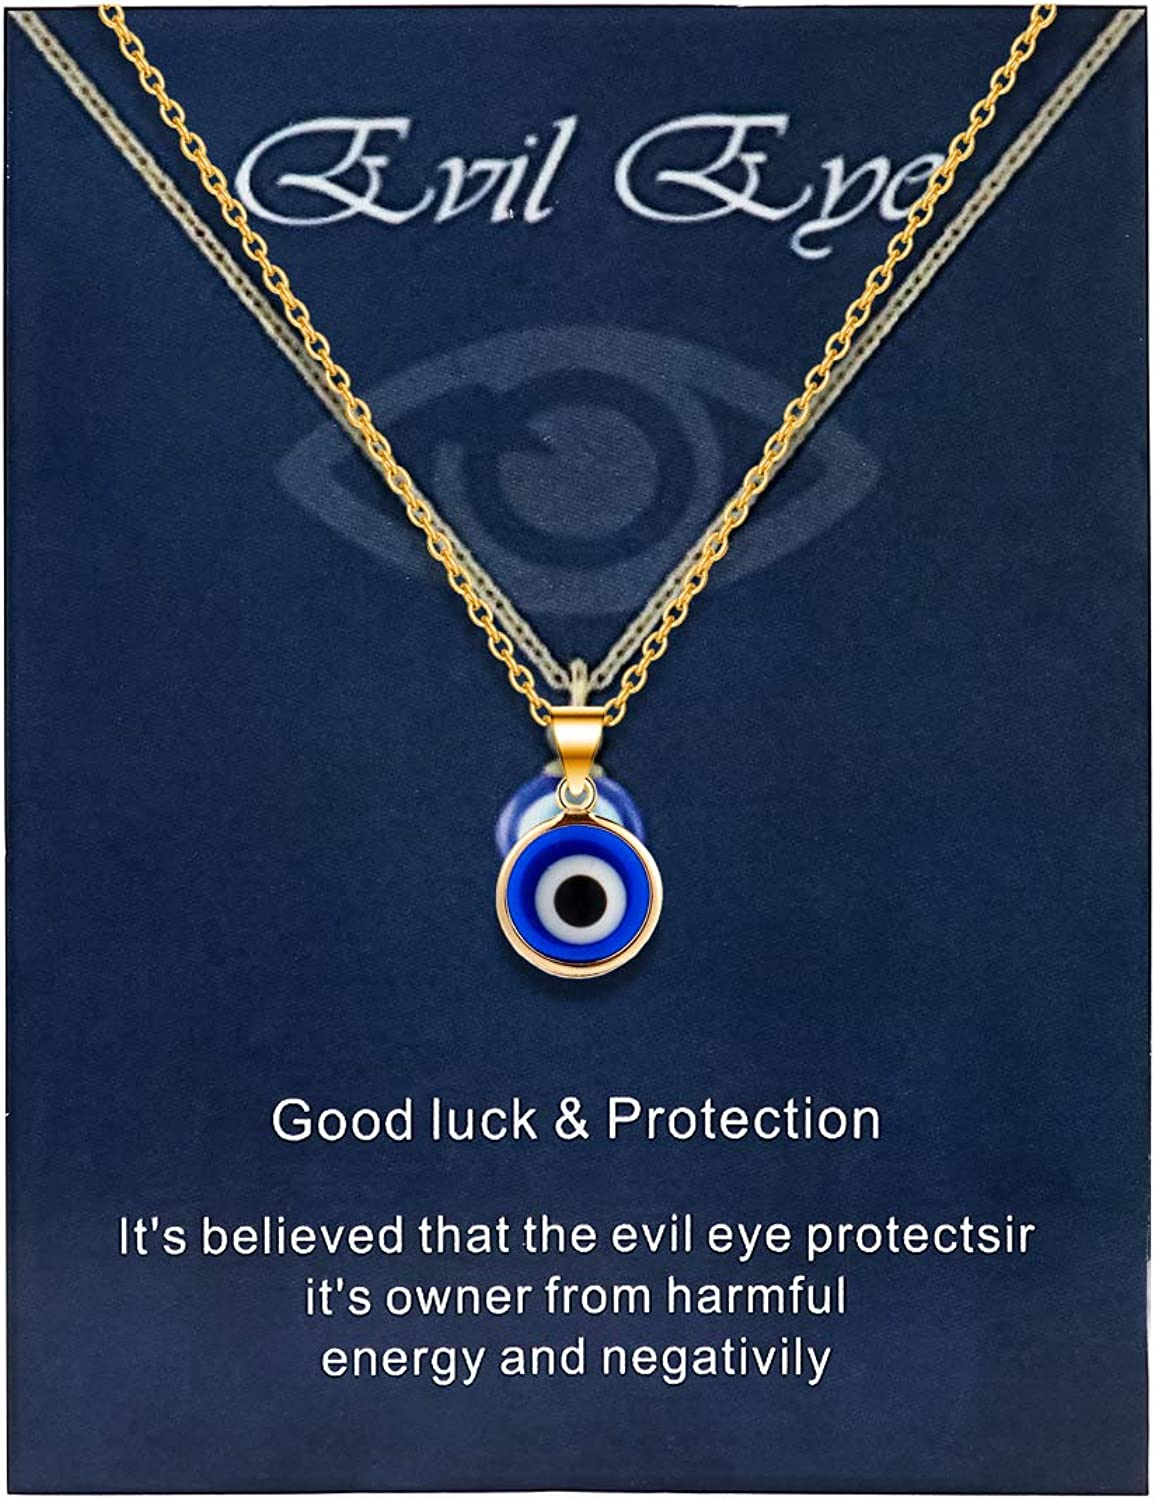 Dainty Blue Turkish Evil Eye Pendant Necklace Lucky Amulet Kabbalah Protection Adjustable Chain with Wish Card for Women Girls